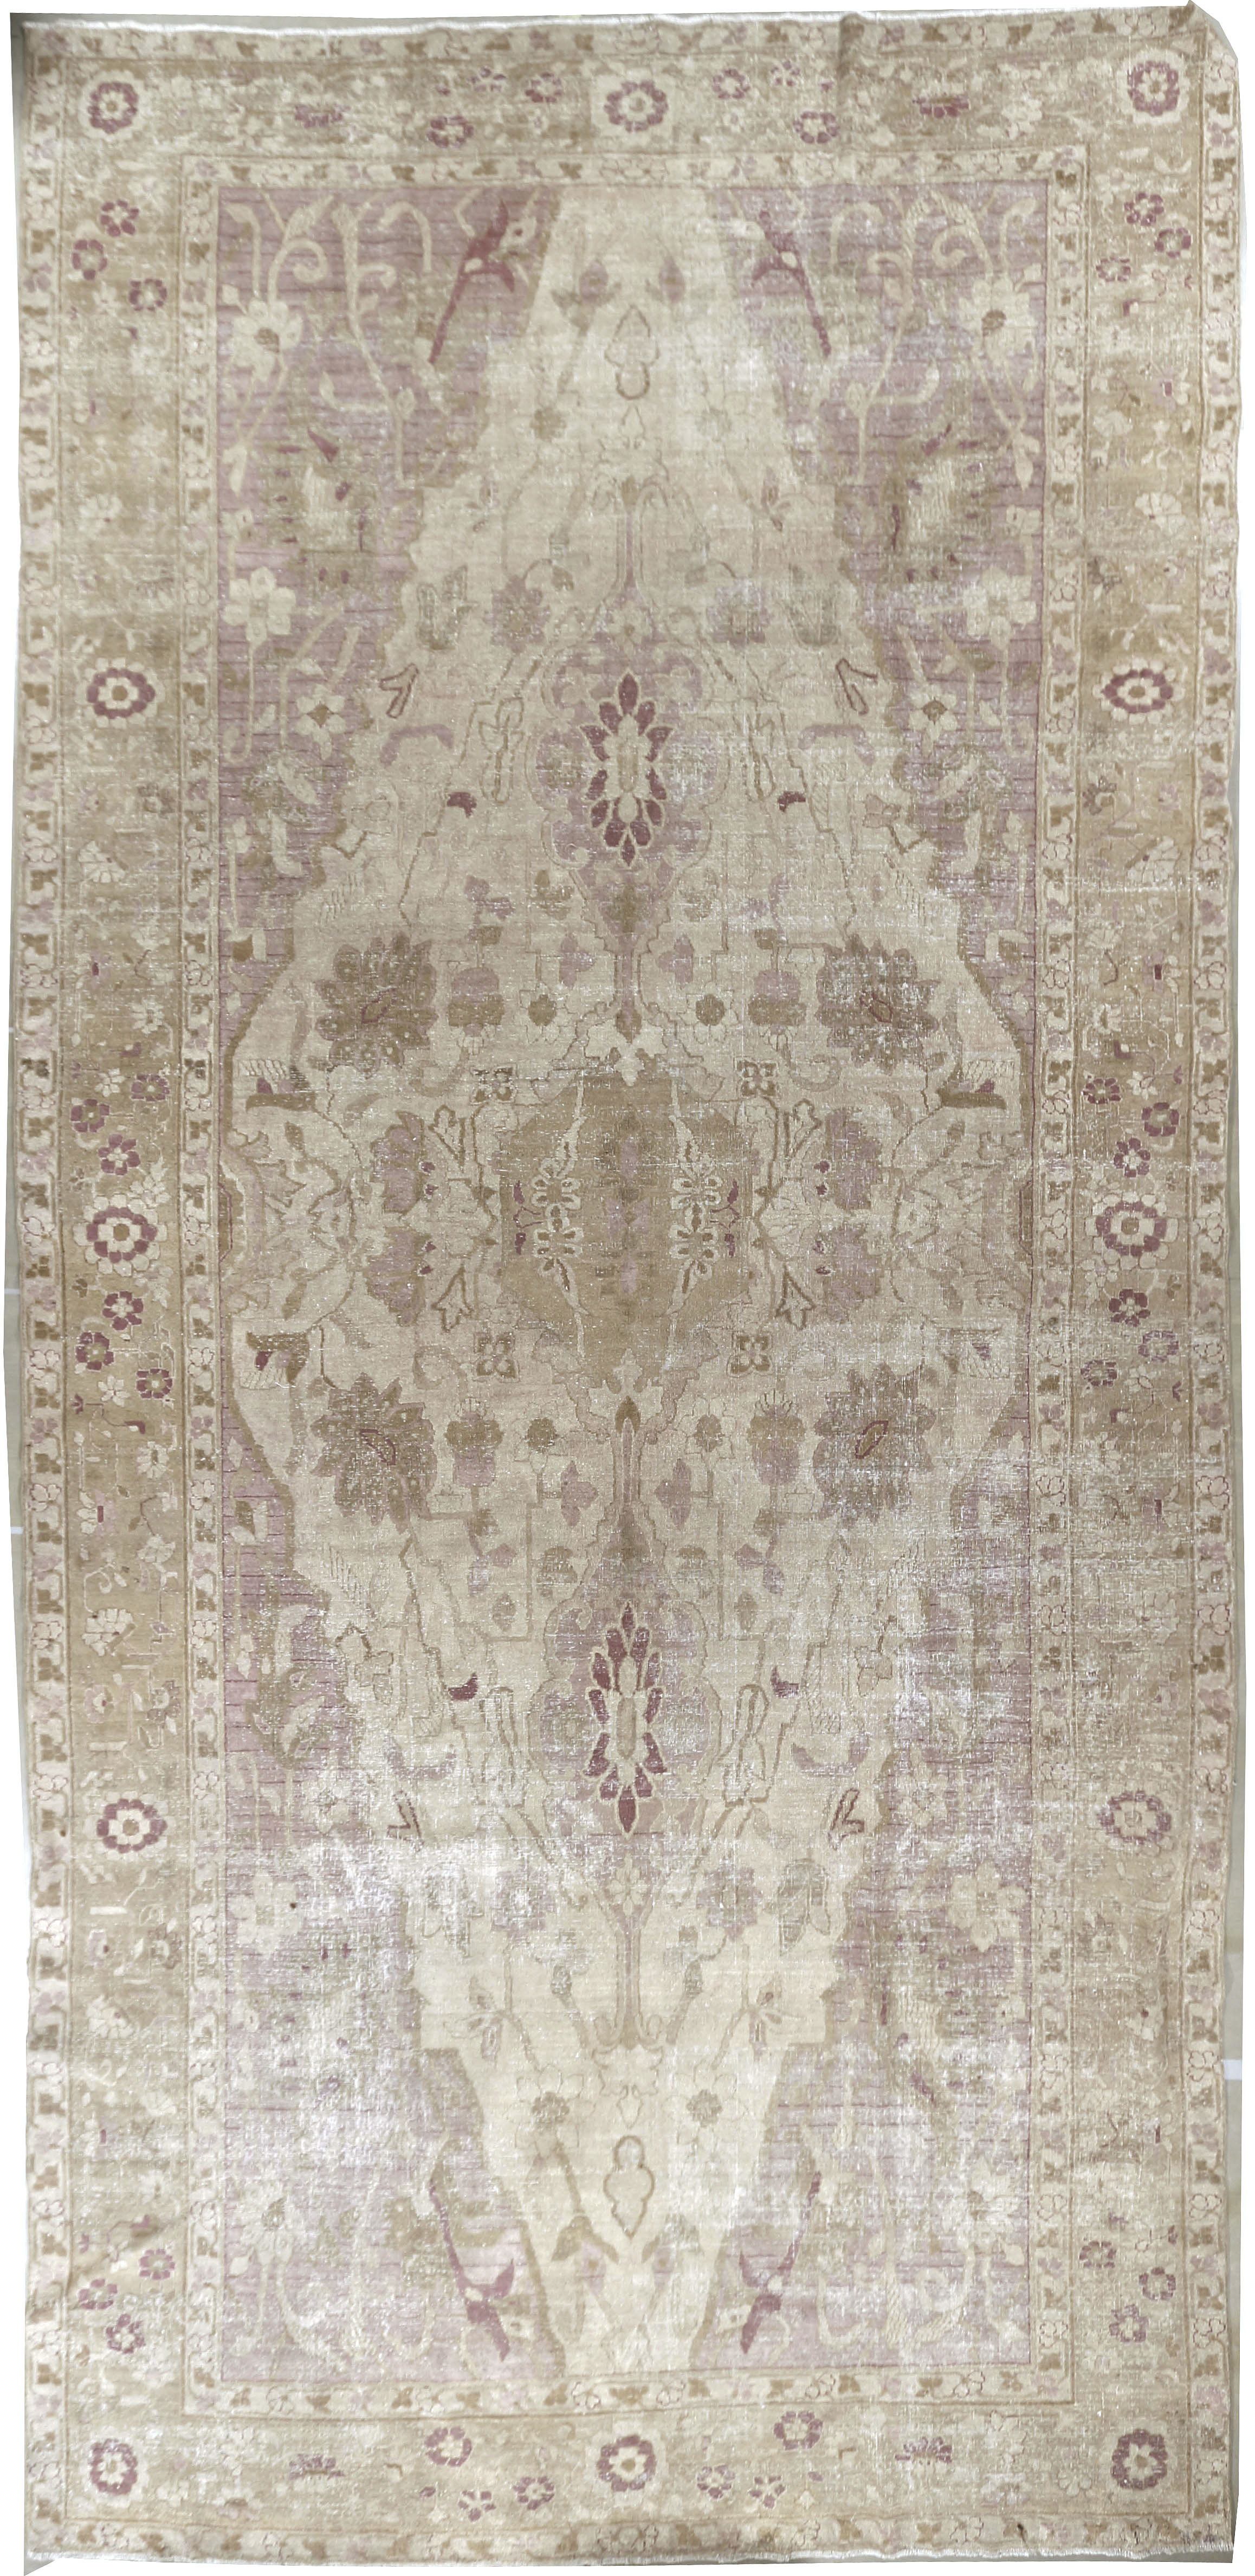 Antique Distressed Indian Amritsar Rug